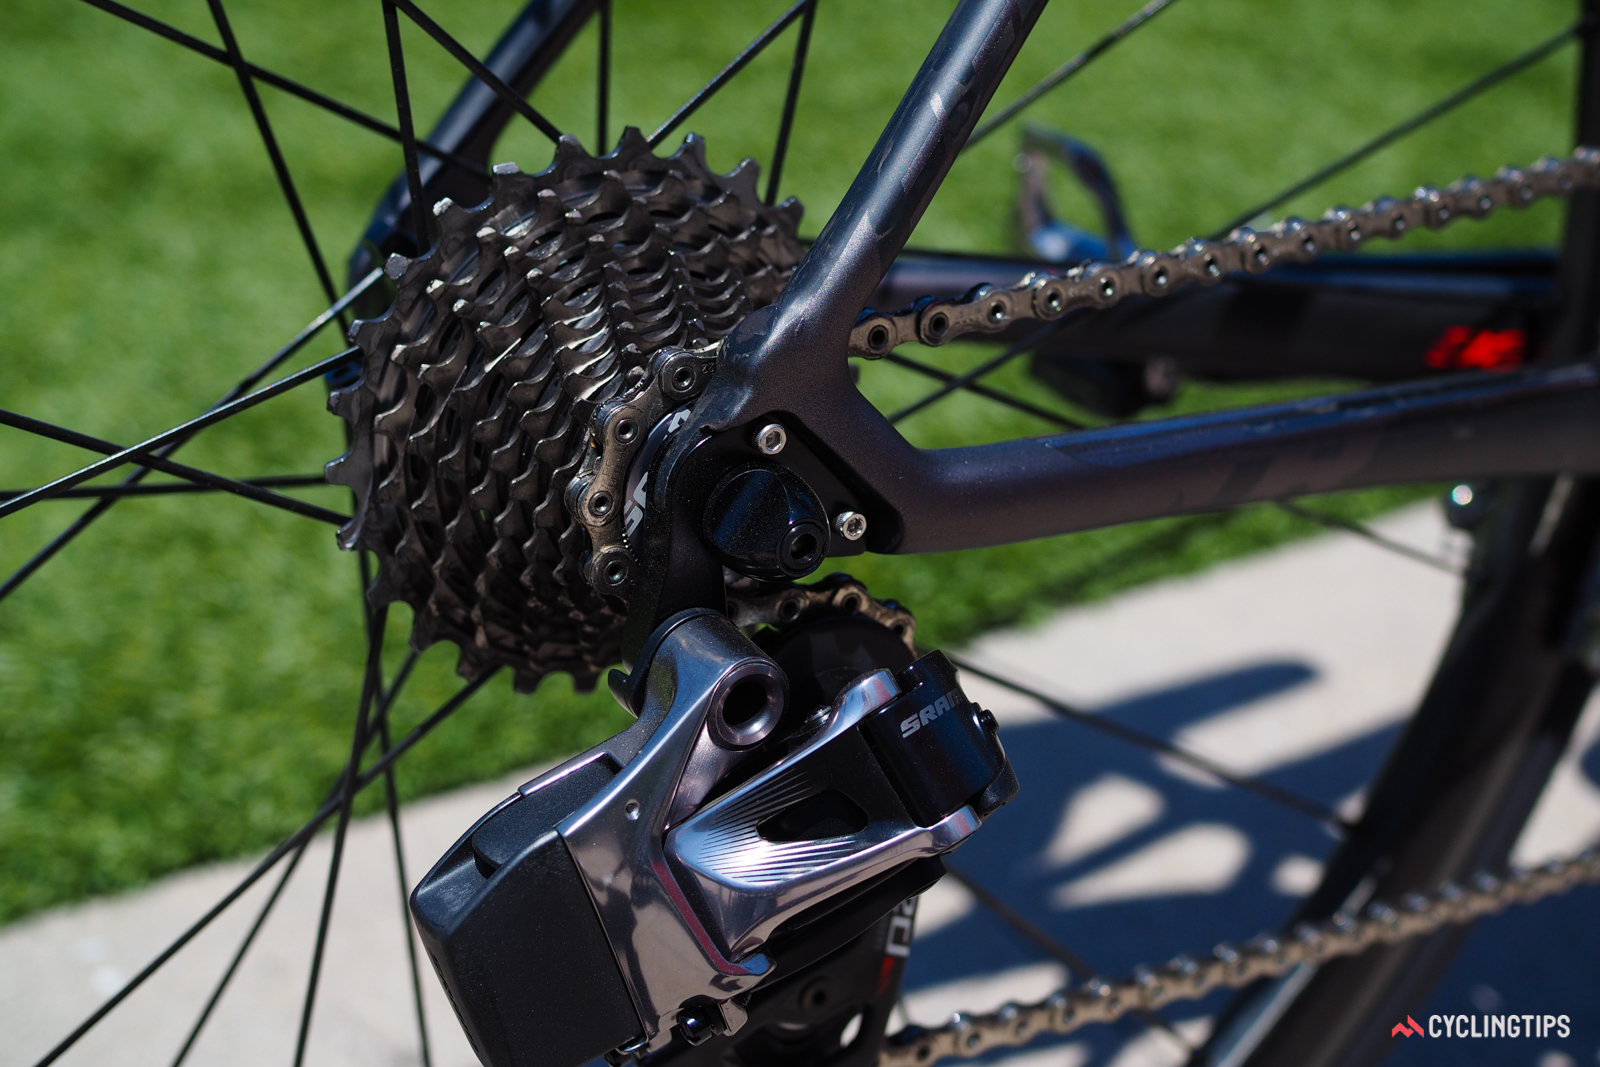 The SRAM Red eTap-equipped complete bike is purpose-built for the task with no holes whatsoever for other drivetrain types.